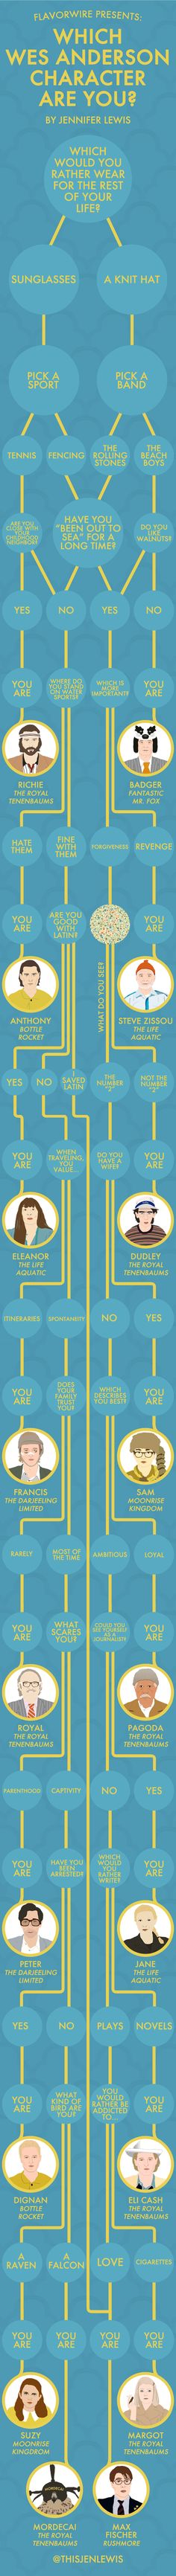 What Wes Anderson character are you?